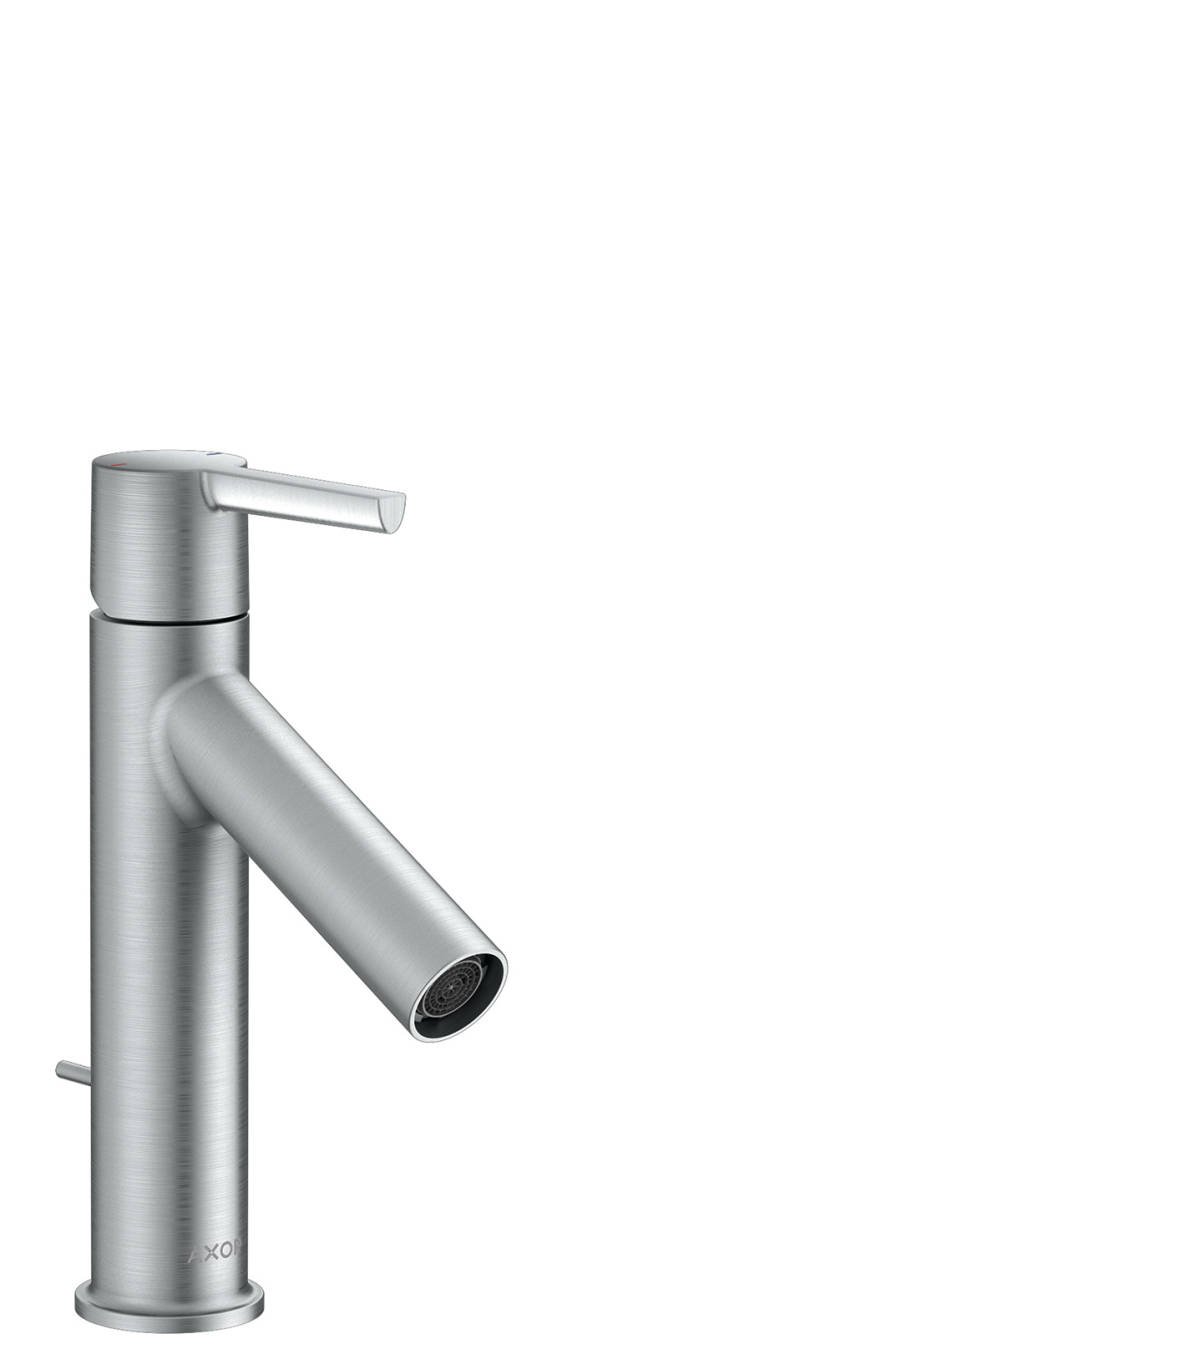 Single lever basin mixer 100 with lever handle and pop-up waste set, Brushed Chrome, 10001260